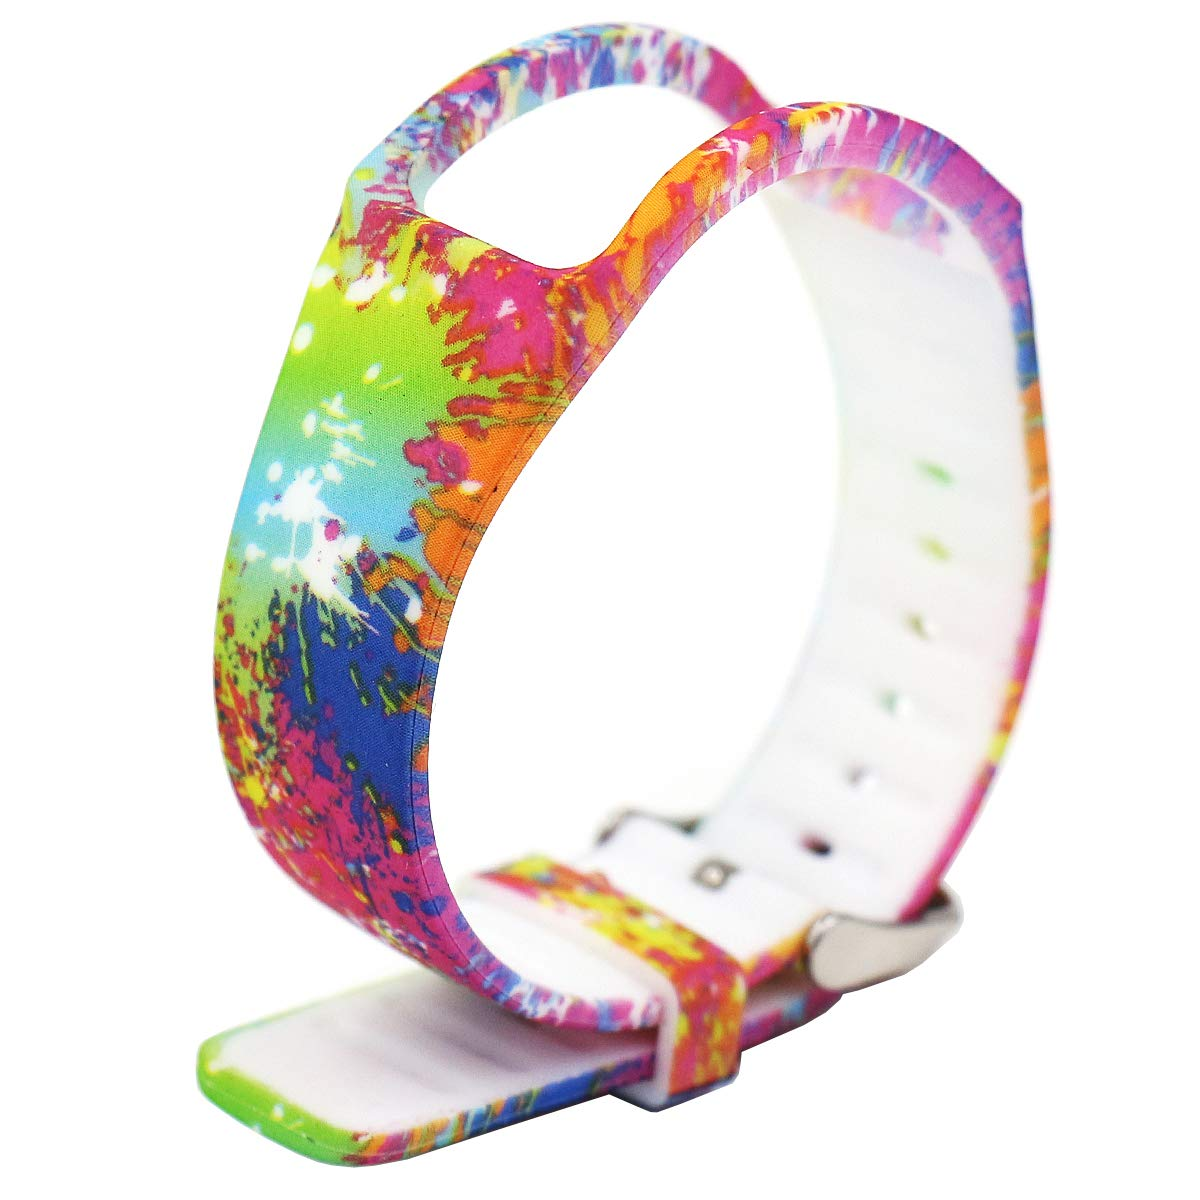 Cross Eletespt Wireless Replacement Band Strap for Samsung Galaxy Gear Fit R350 Smartwatch Bracelet Accessories Bands